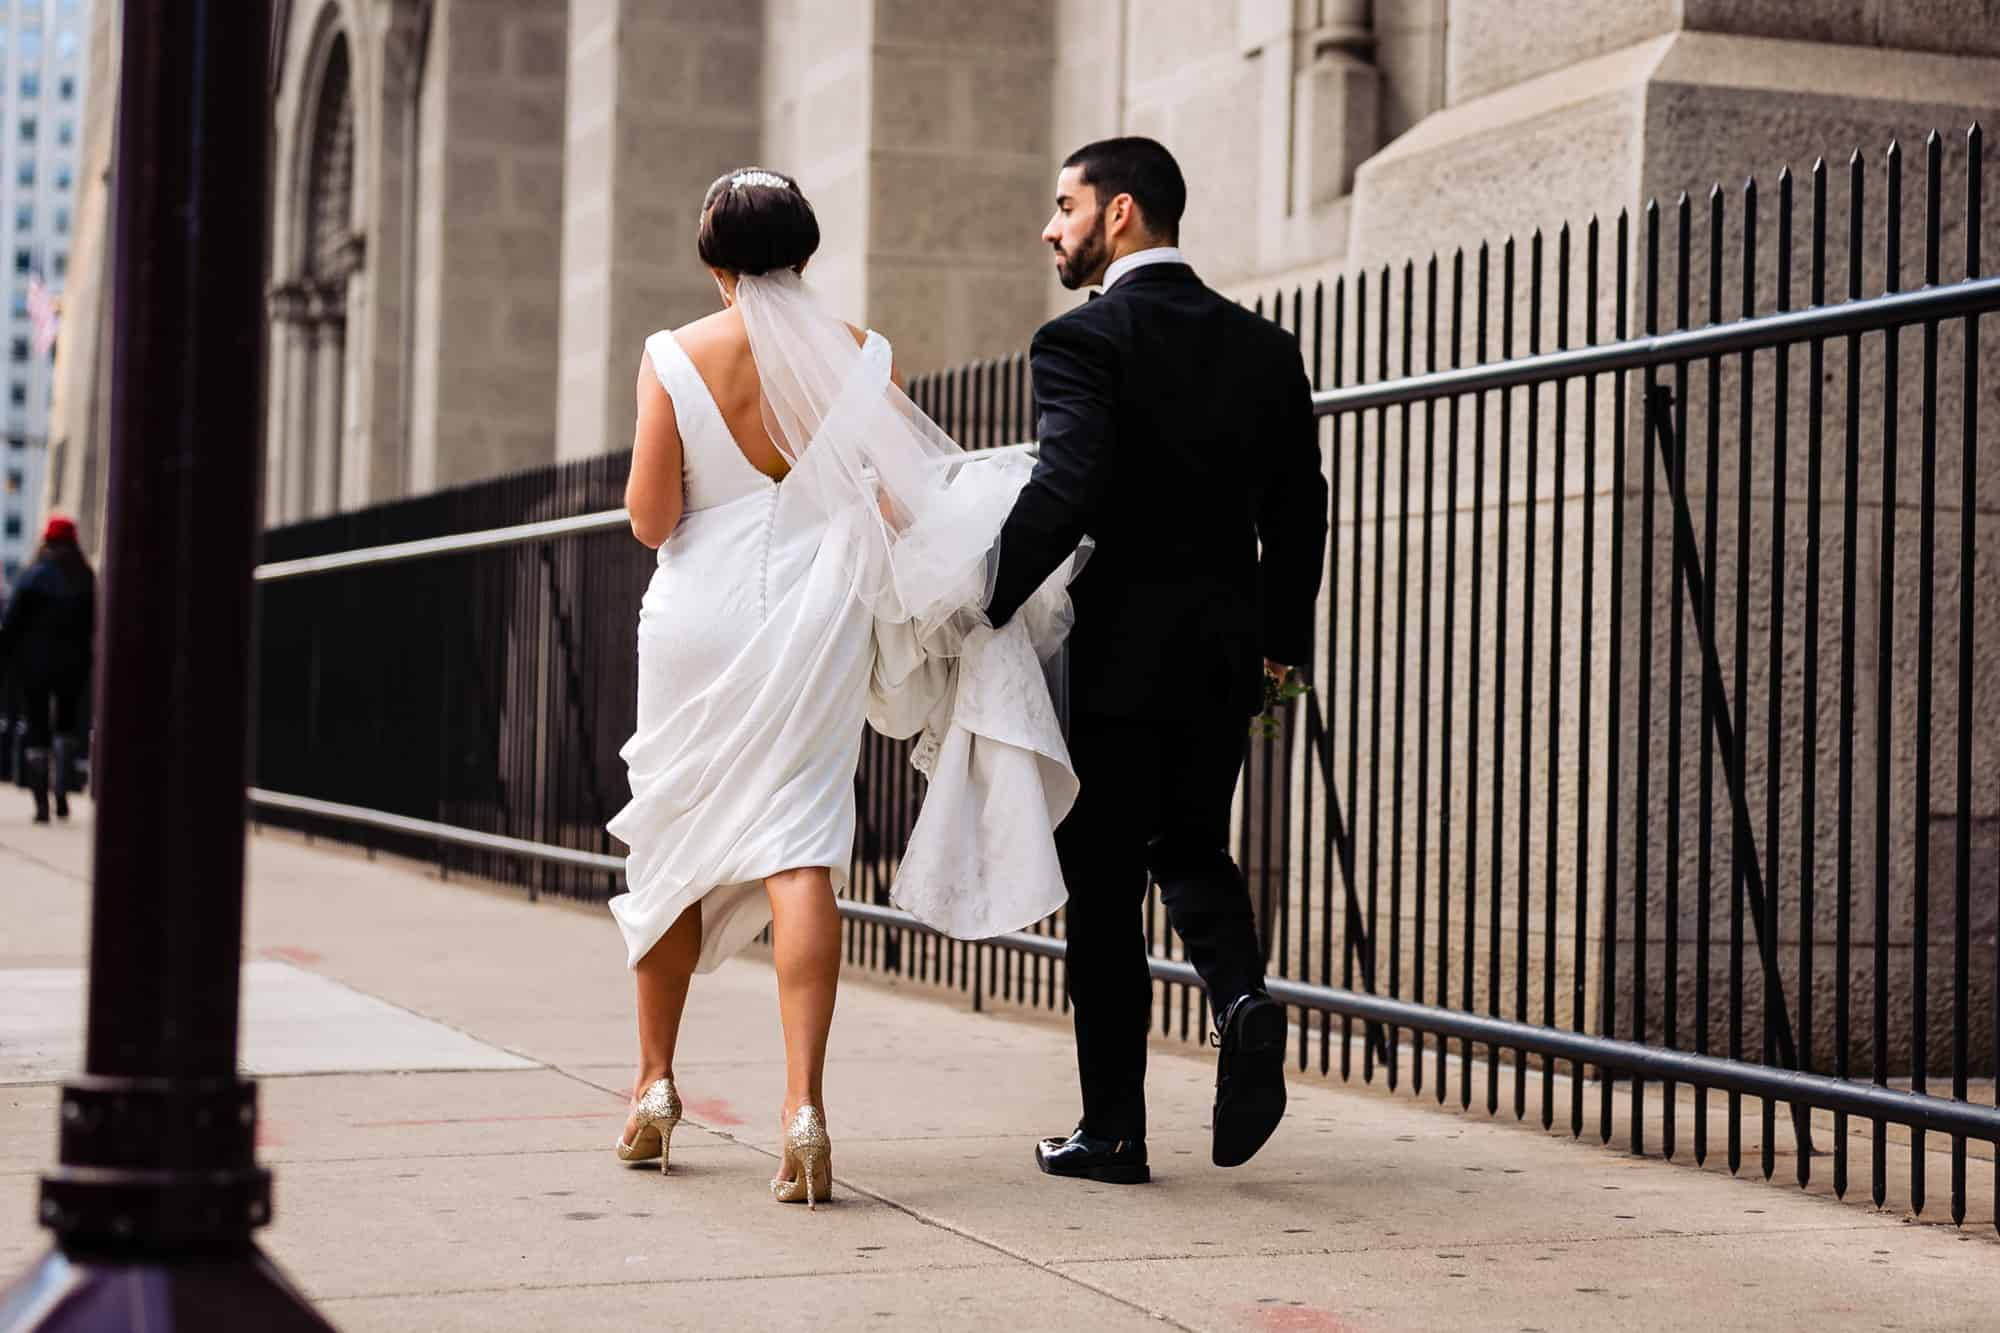 Bride and groom walking in city